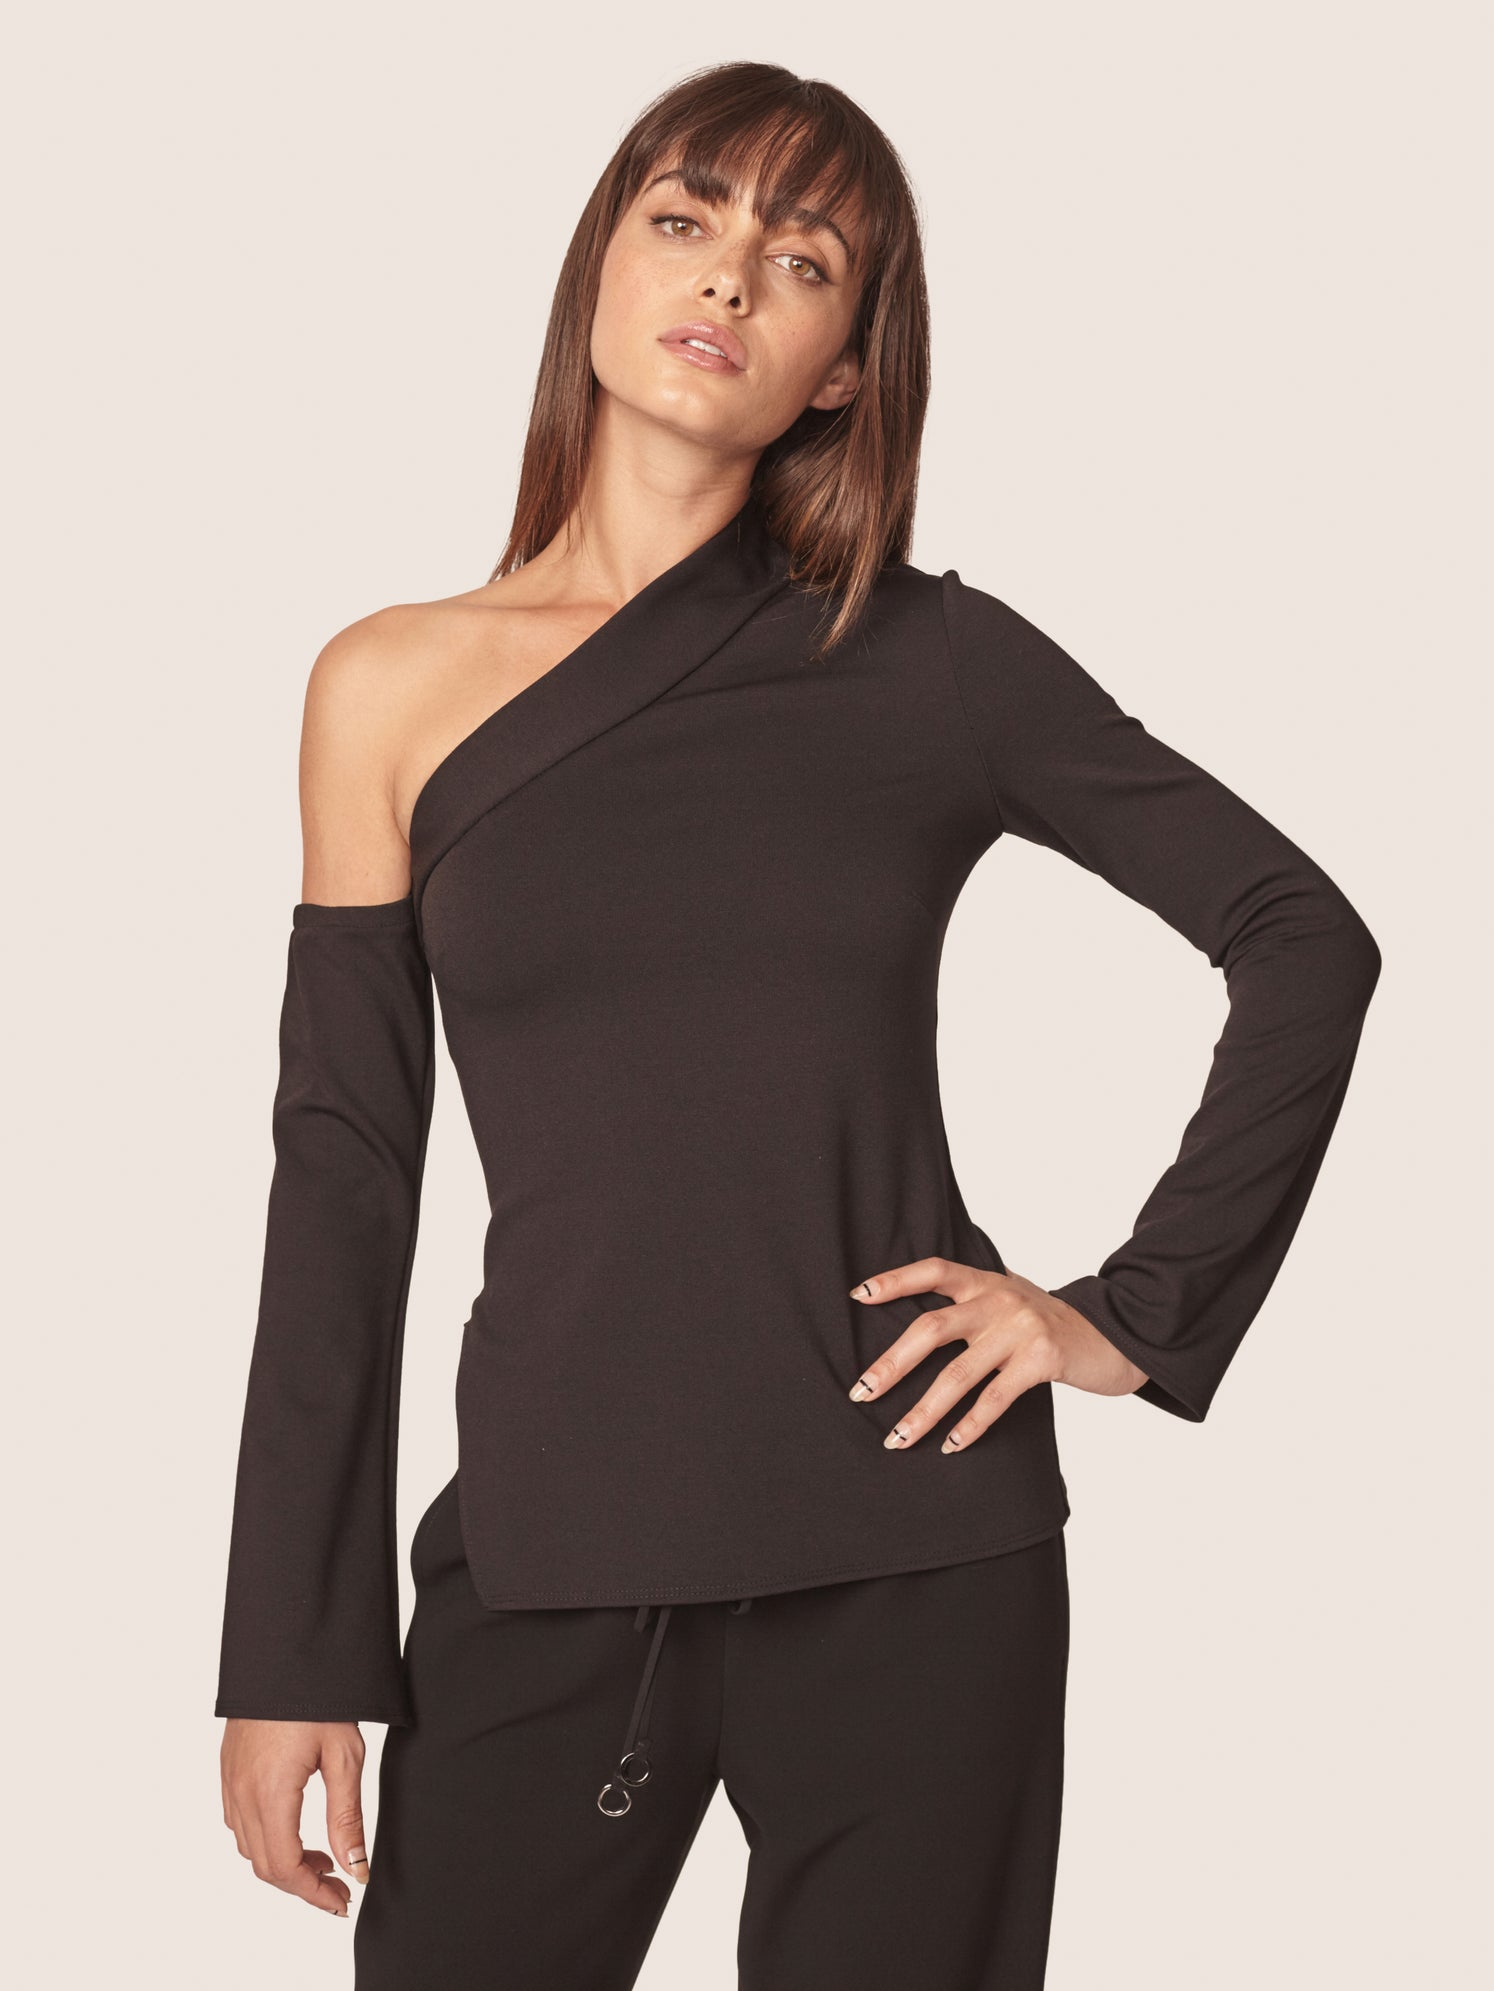 Black one shoulder top with sleeves and side zipper slit